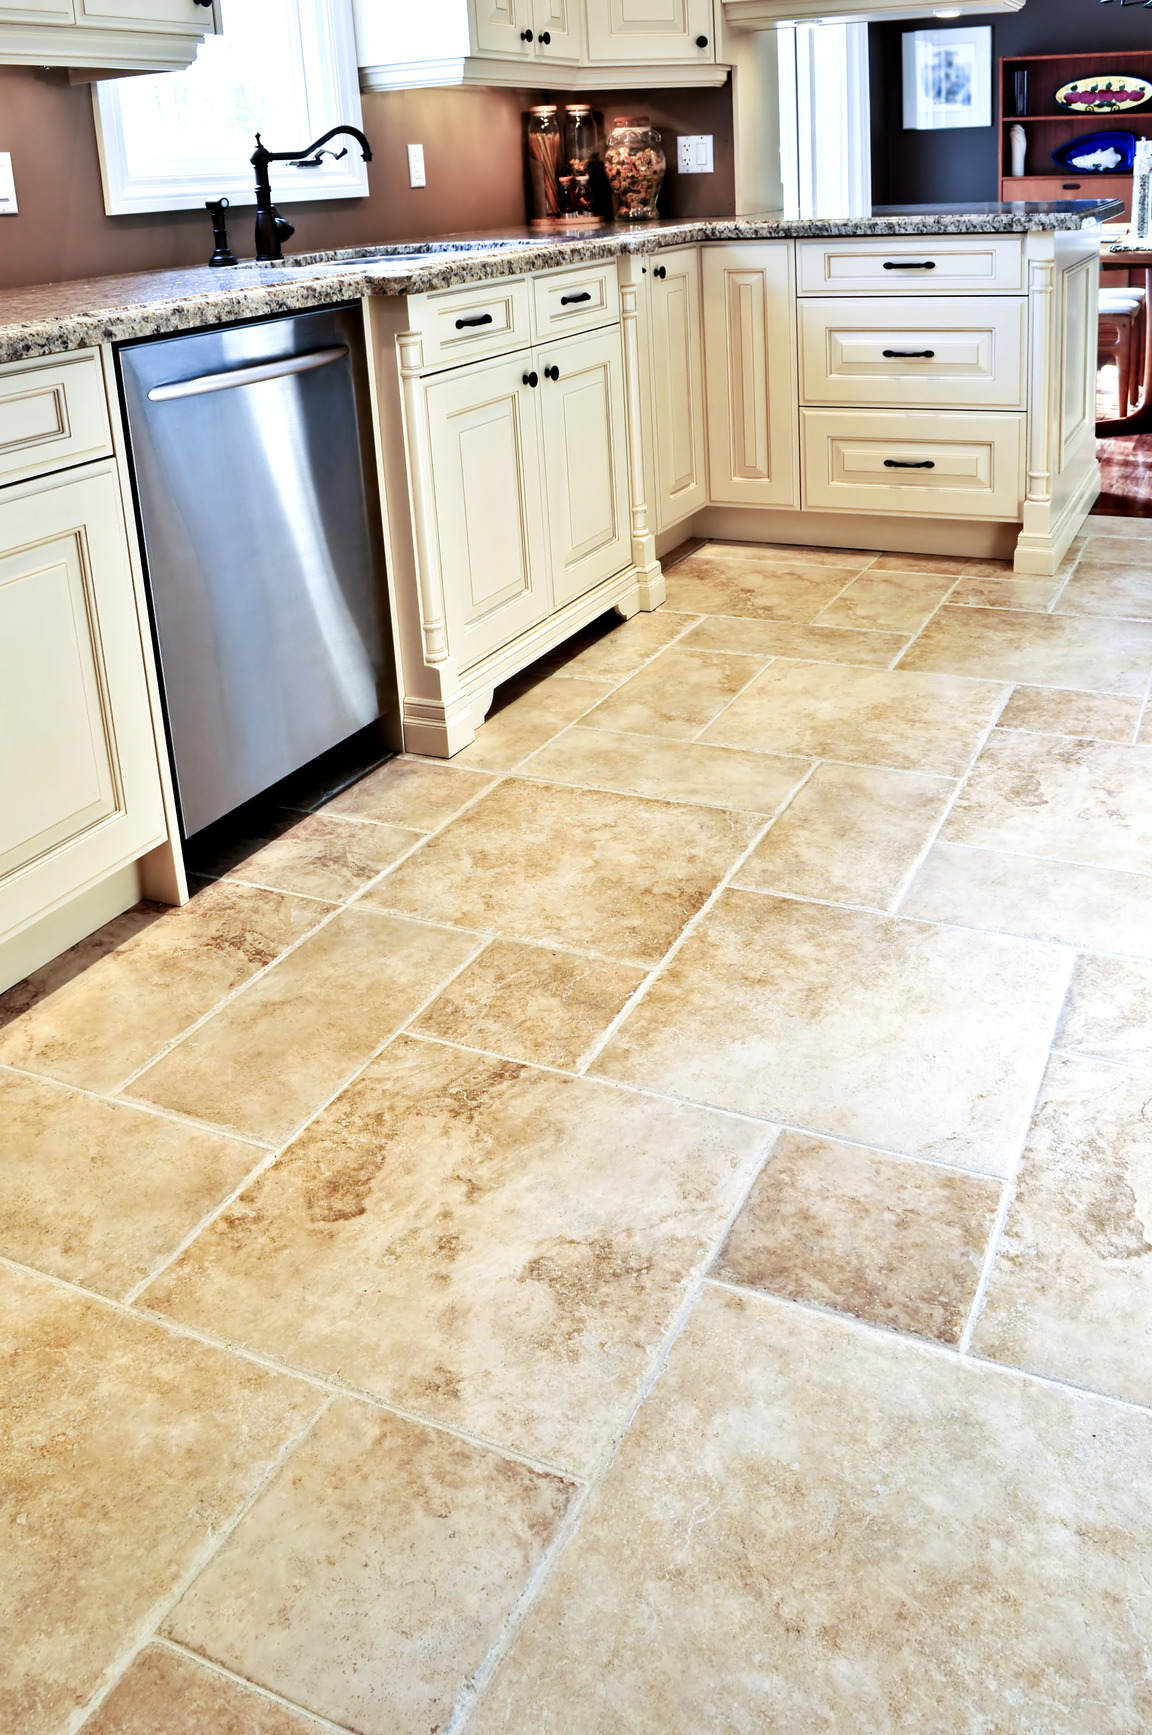 Rectangular floor tile design homesfeed tile floor in modern kitchen dailygadgetfo Gallery